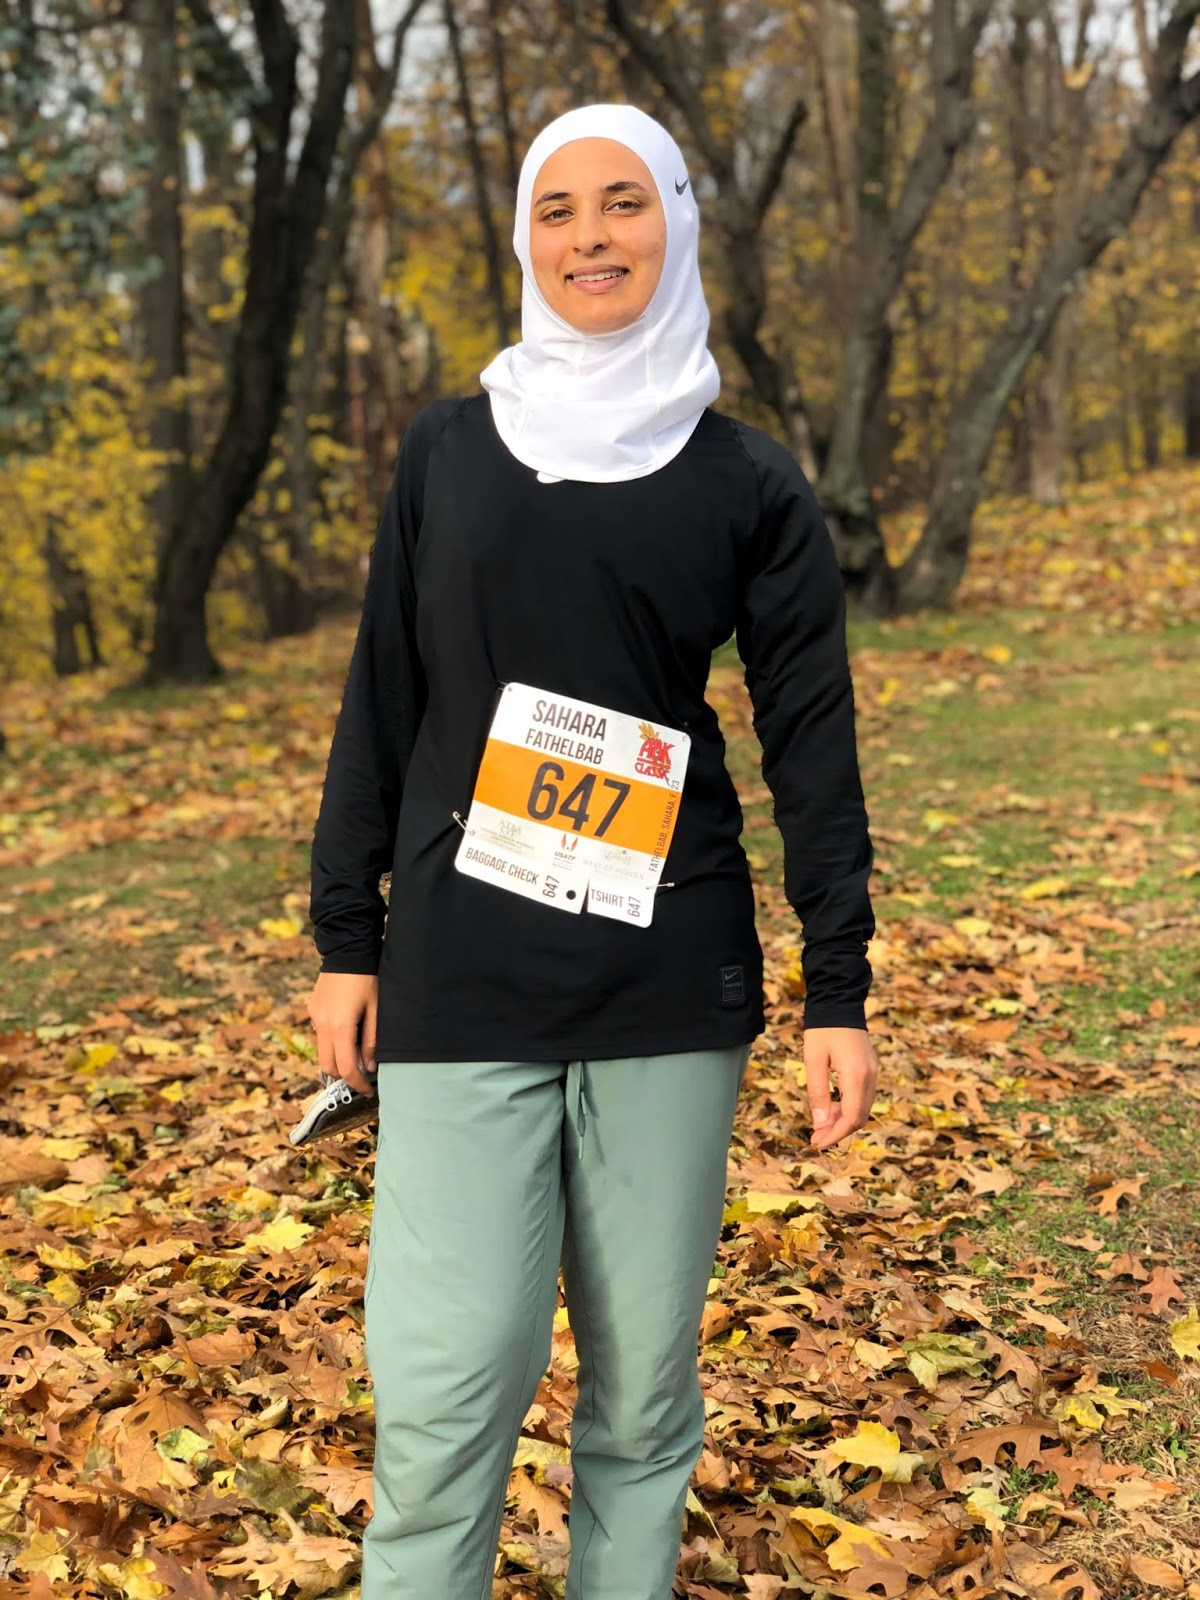 Sahara smiling after 8K race in white nike hijab and trees in the background